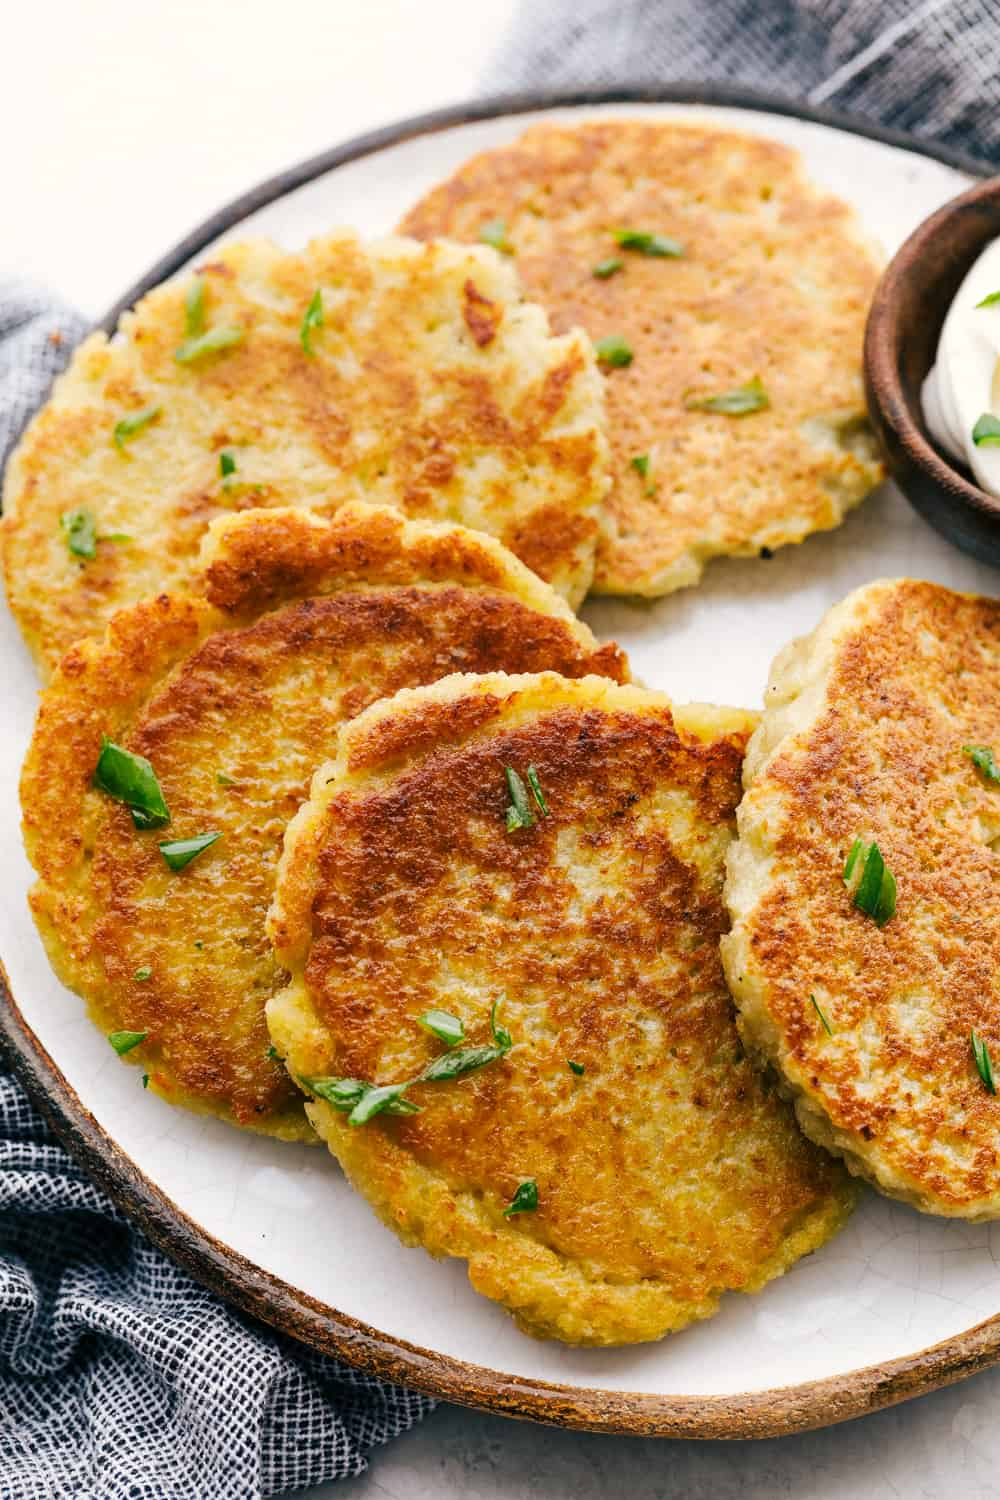 Crispy savory potato pancakes on a plate.